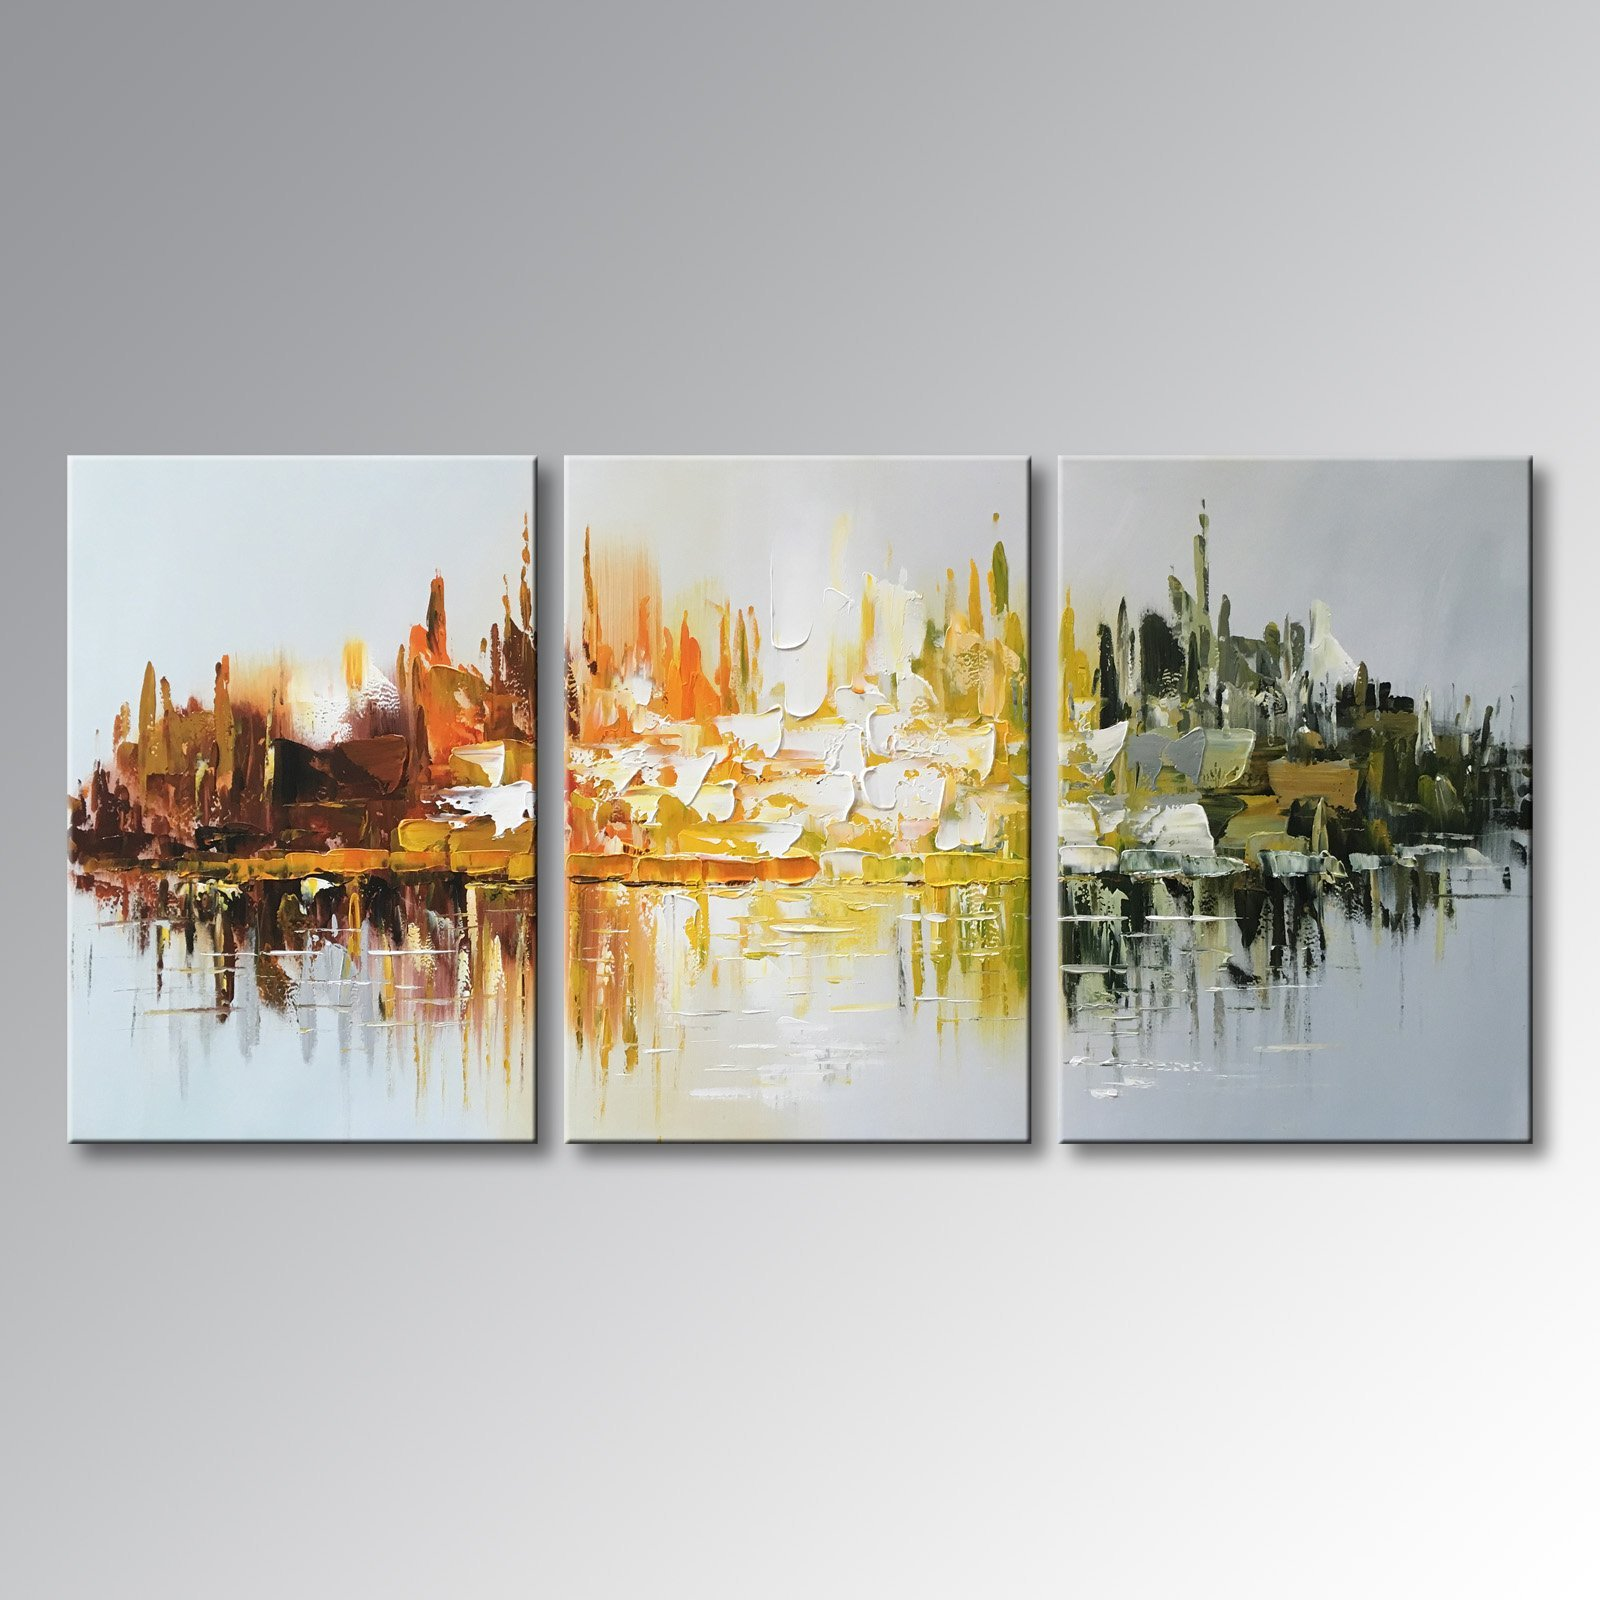 Winpeak Art Hand-painted Abstract Large Canvas Wall Art Modern Landscape Oil Painting for Living Room Contemporary Artwork Decor Hanging Framed Ready to Hang (72''W x 36''H (24''x36'' x3pcs)) by Winpeak Art